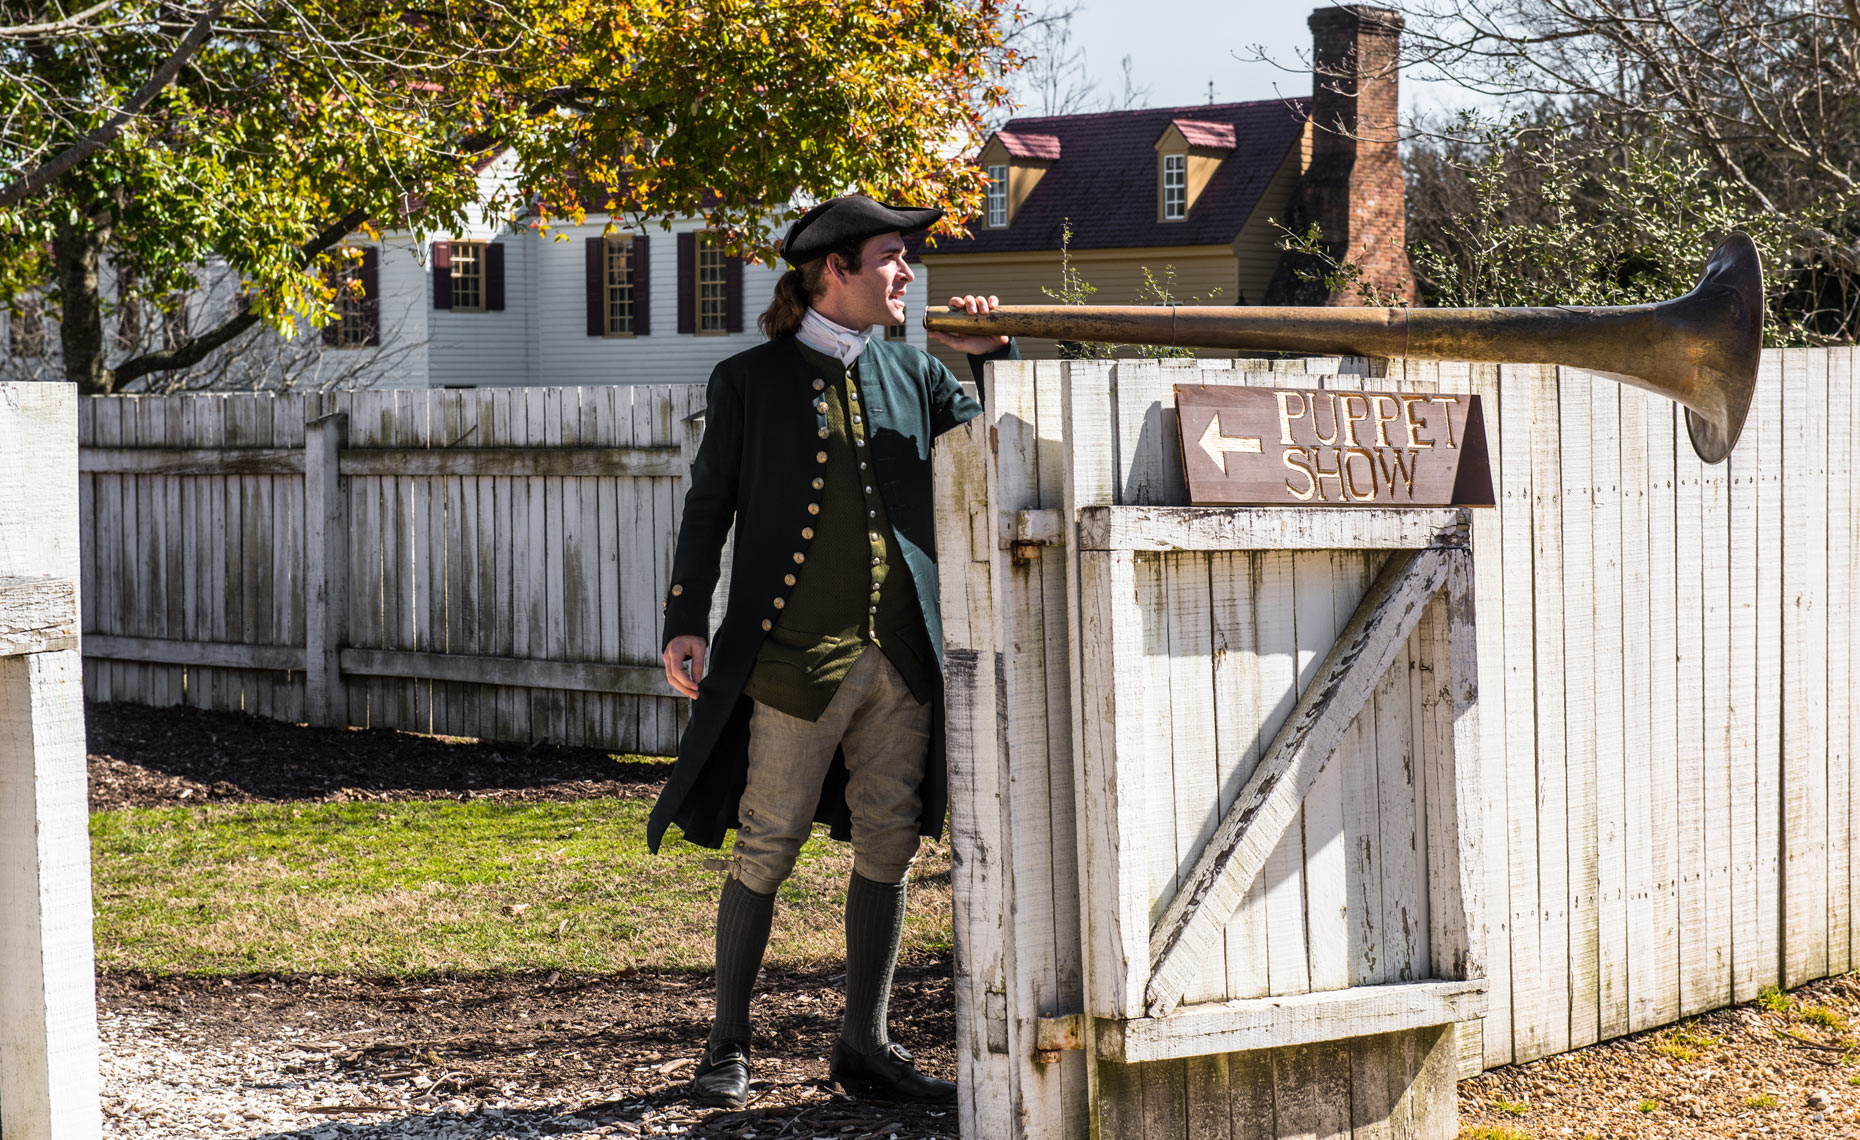 Colton-travel-photography-williamsburg-va-120